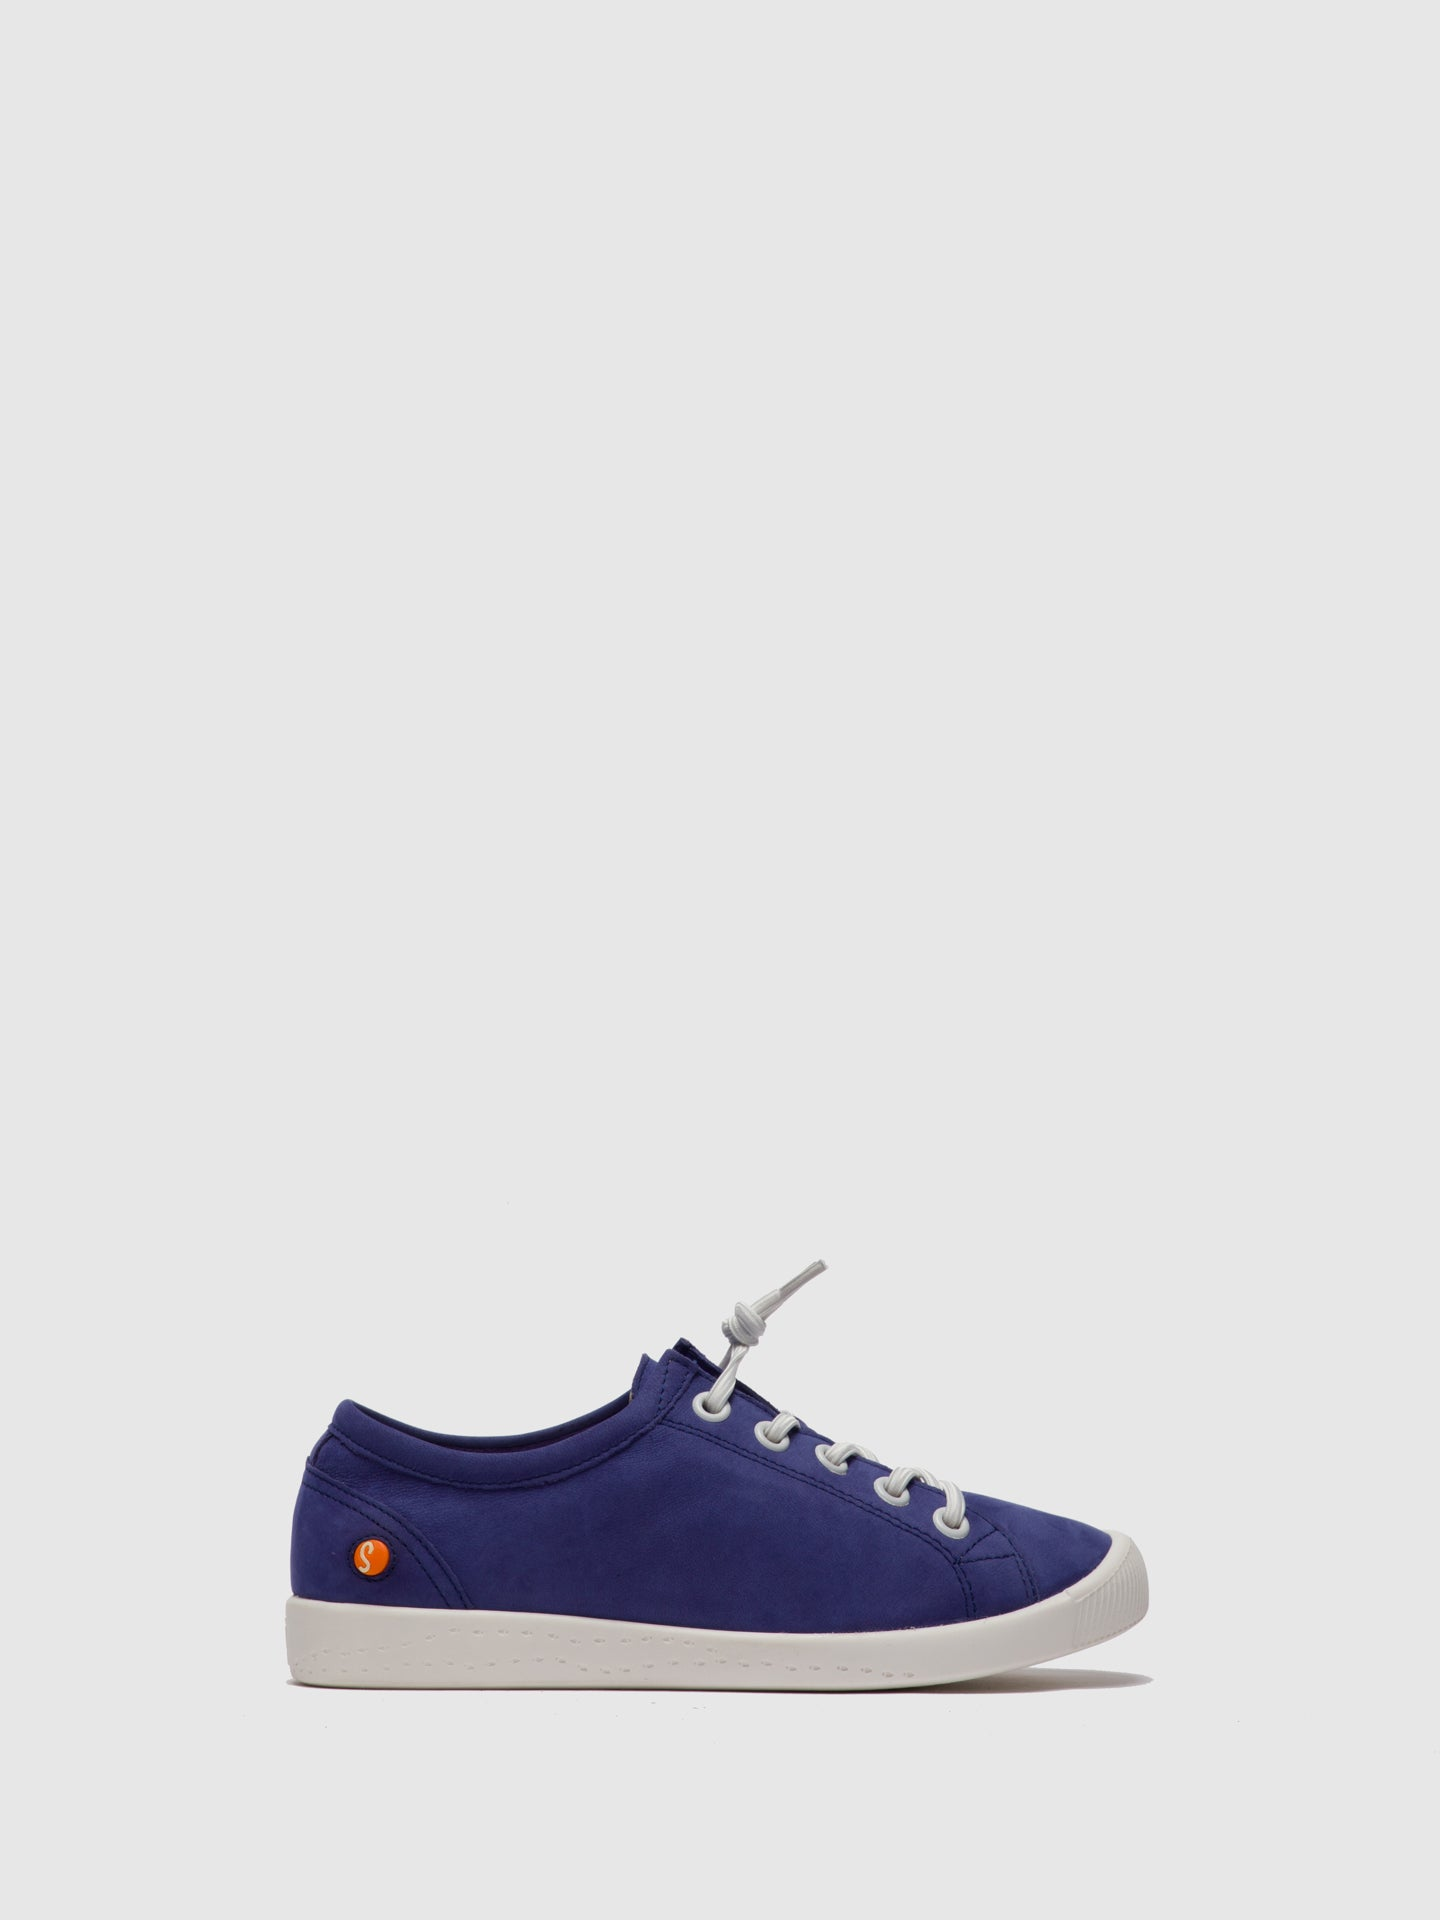 SOFTINOS Purple Lace-up Shoes